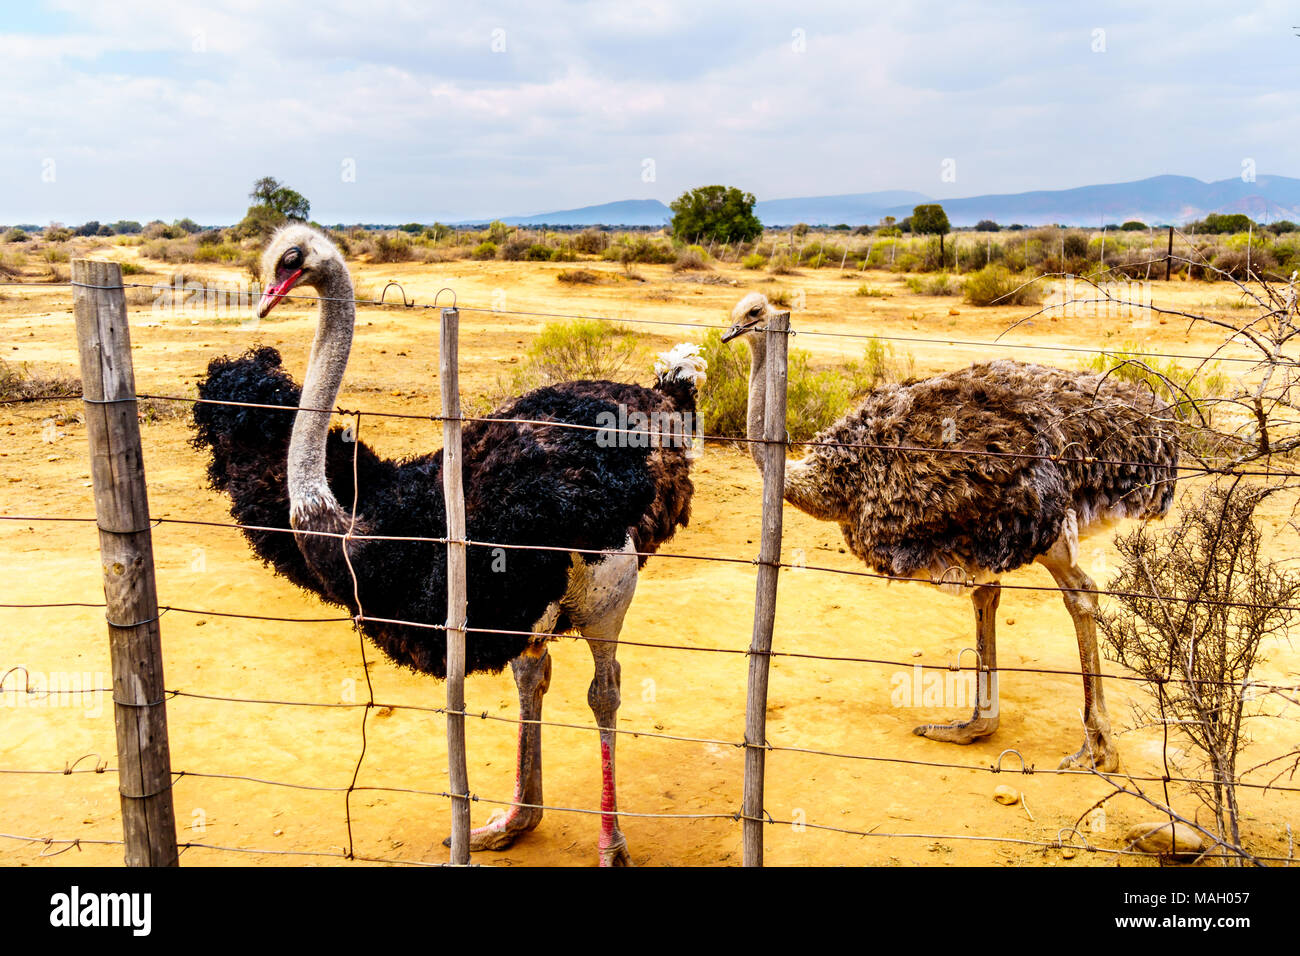 Female Ostrich and Male Ostrich at an Ostrich Farm in Oudtshoorn in the semi desert Little Karoo Region Western Cape Province of South Africa - Stock Image